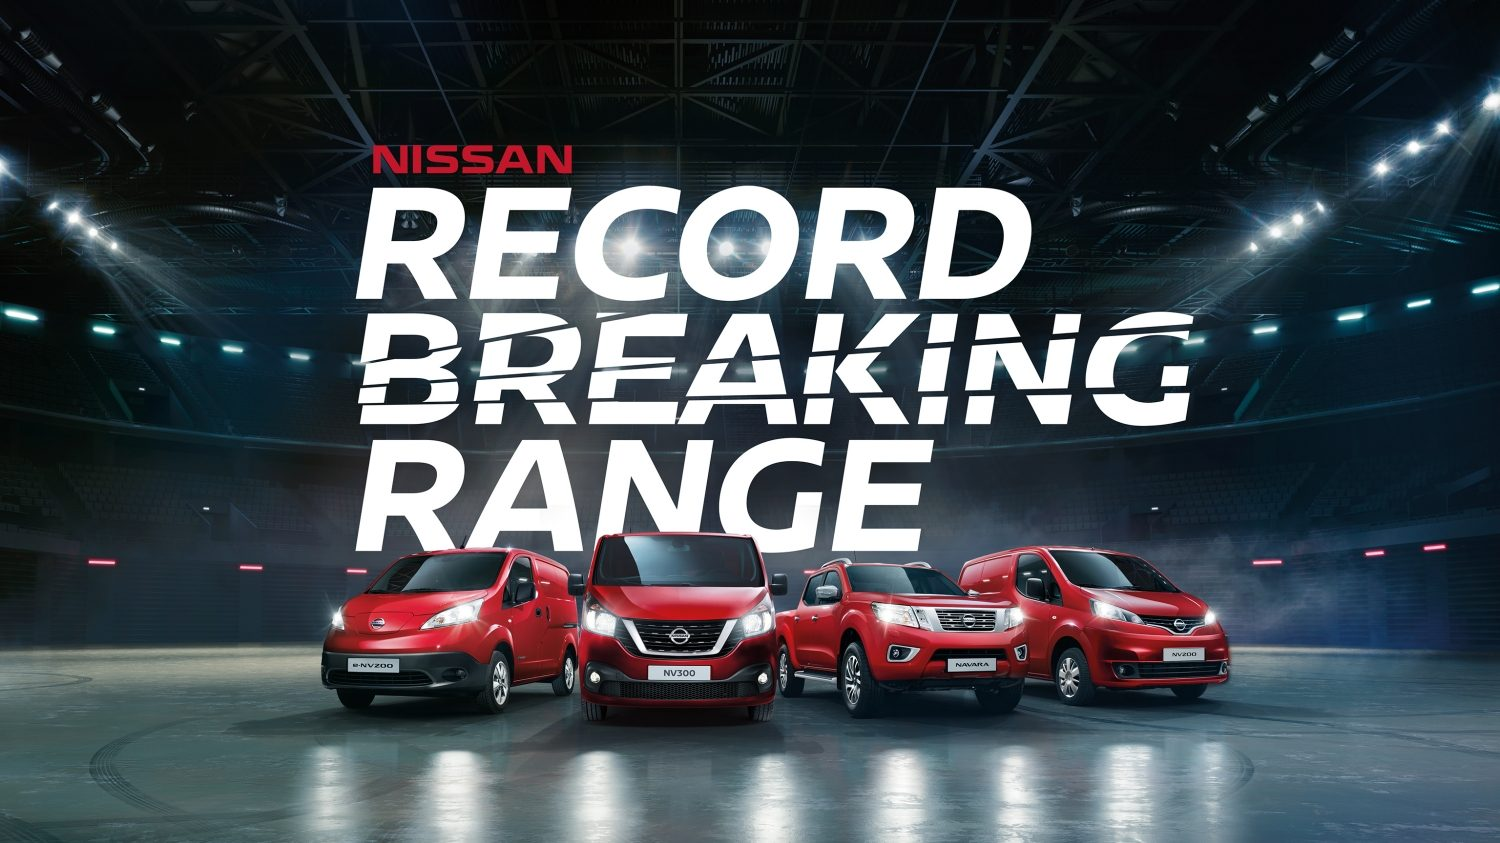 Nissan, the record breaking range